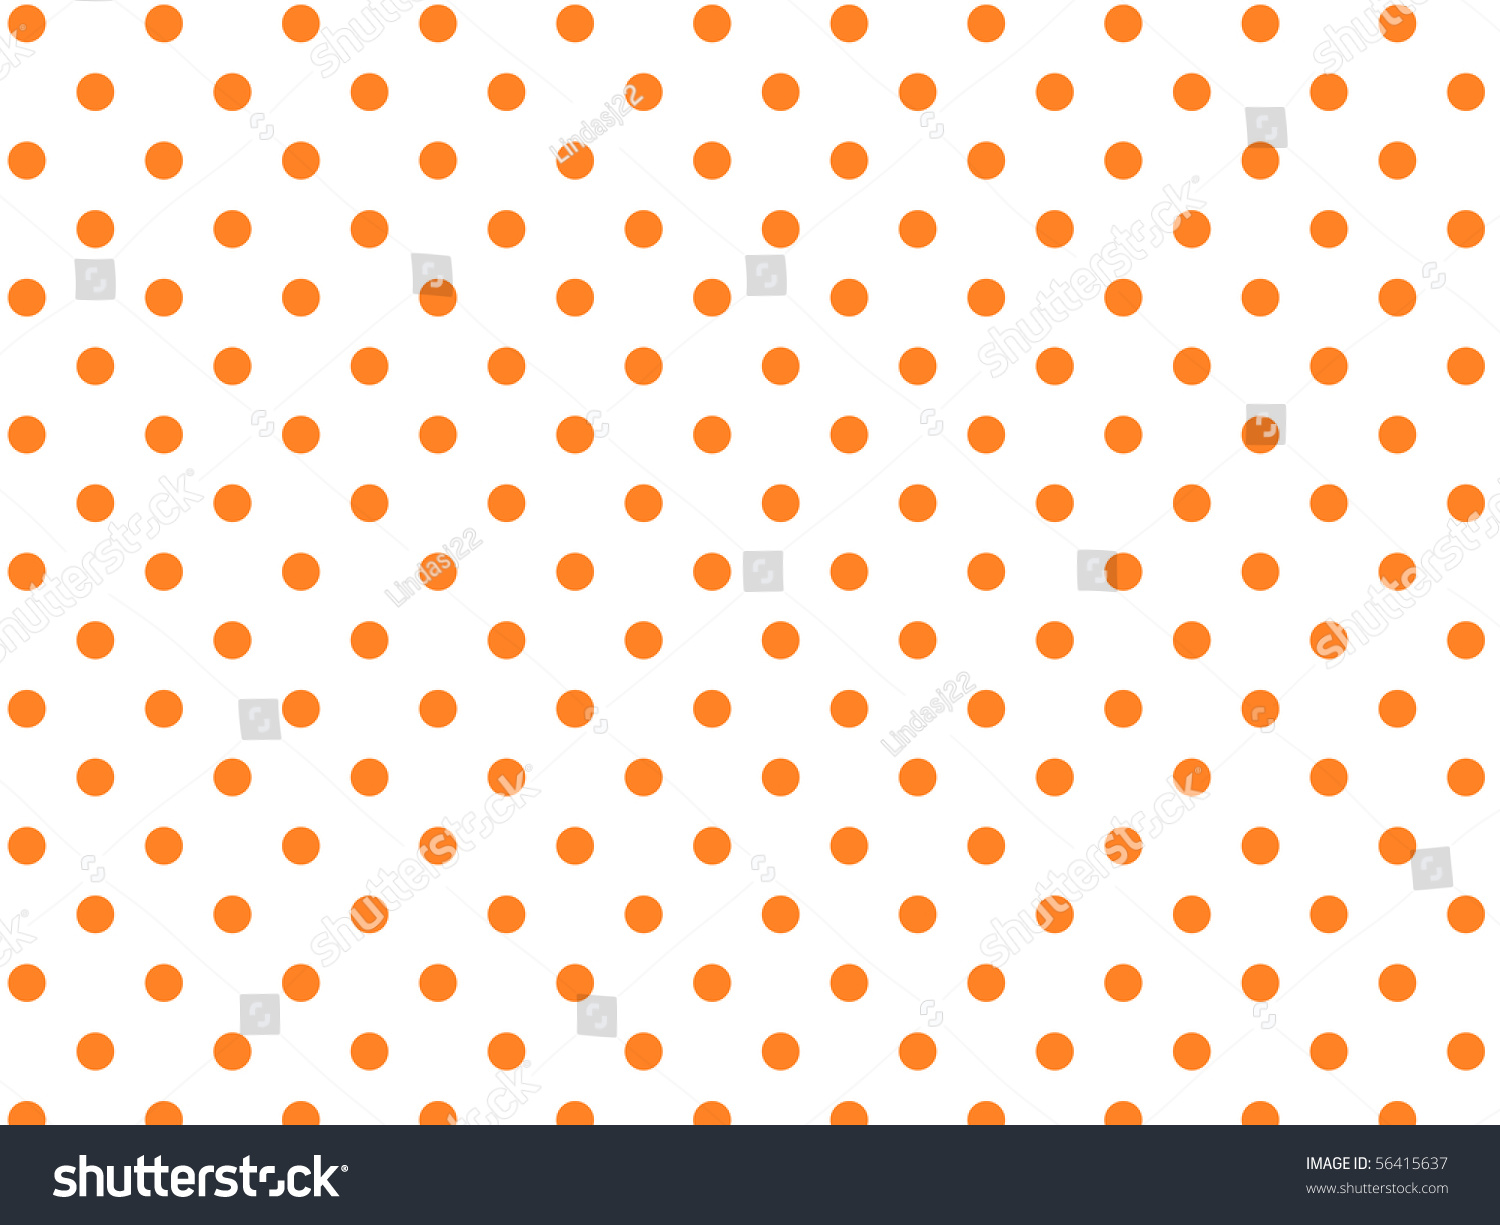 Jpg, White Background With Orange Polka Dots. Stock Photo ...